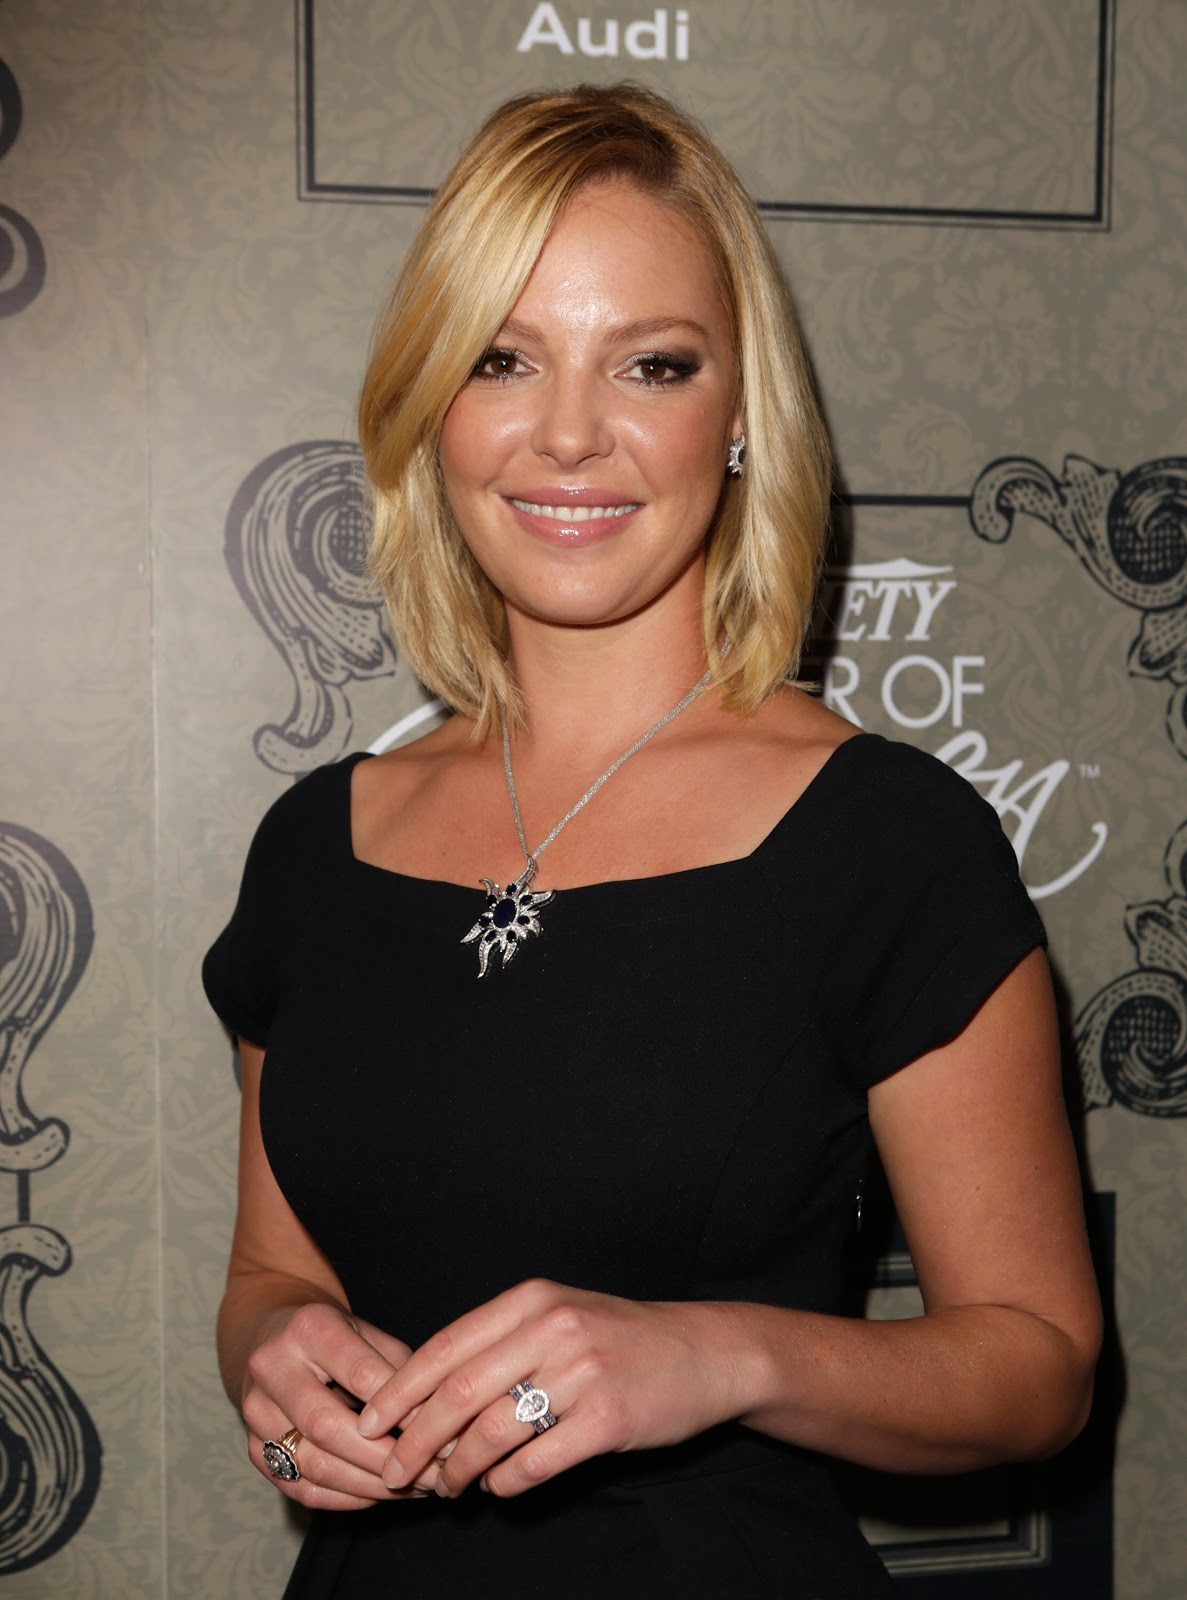 Katherine Heigl at Variety's 4th Annual Power of Women Event